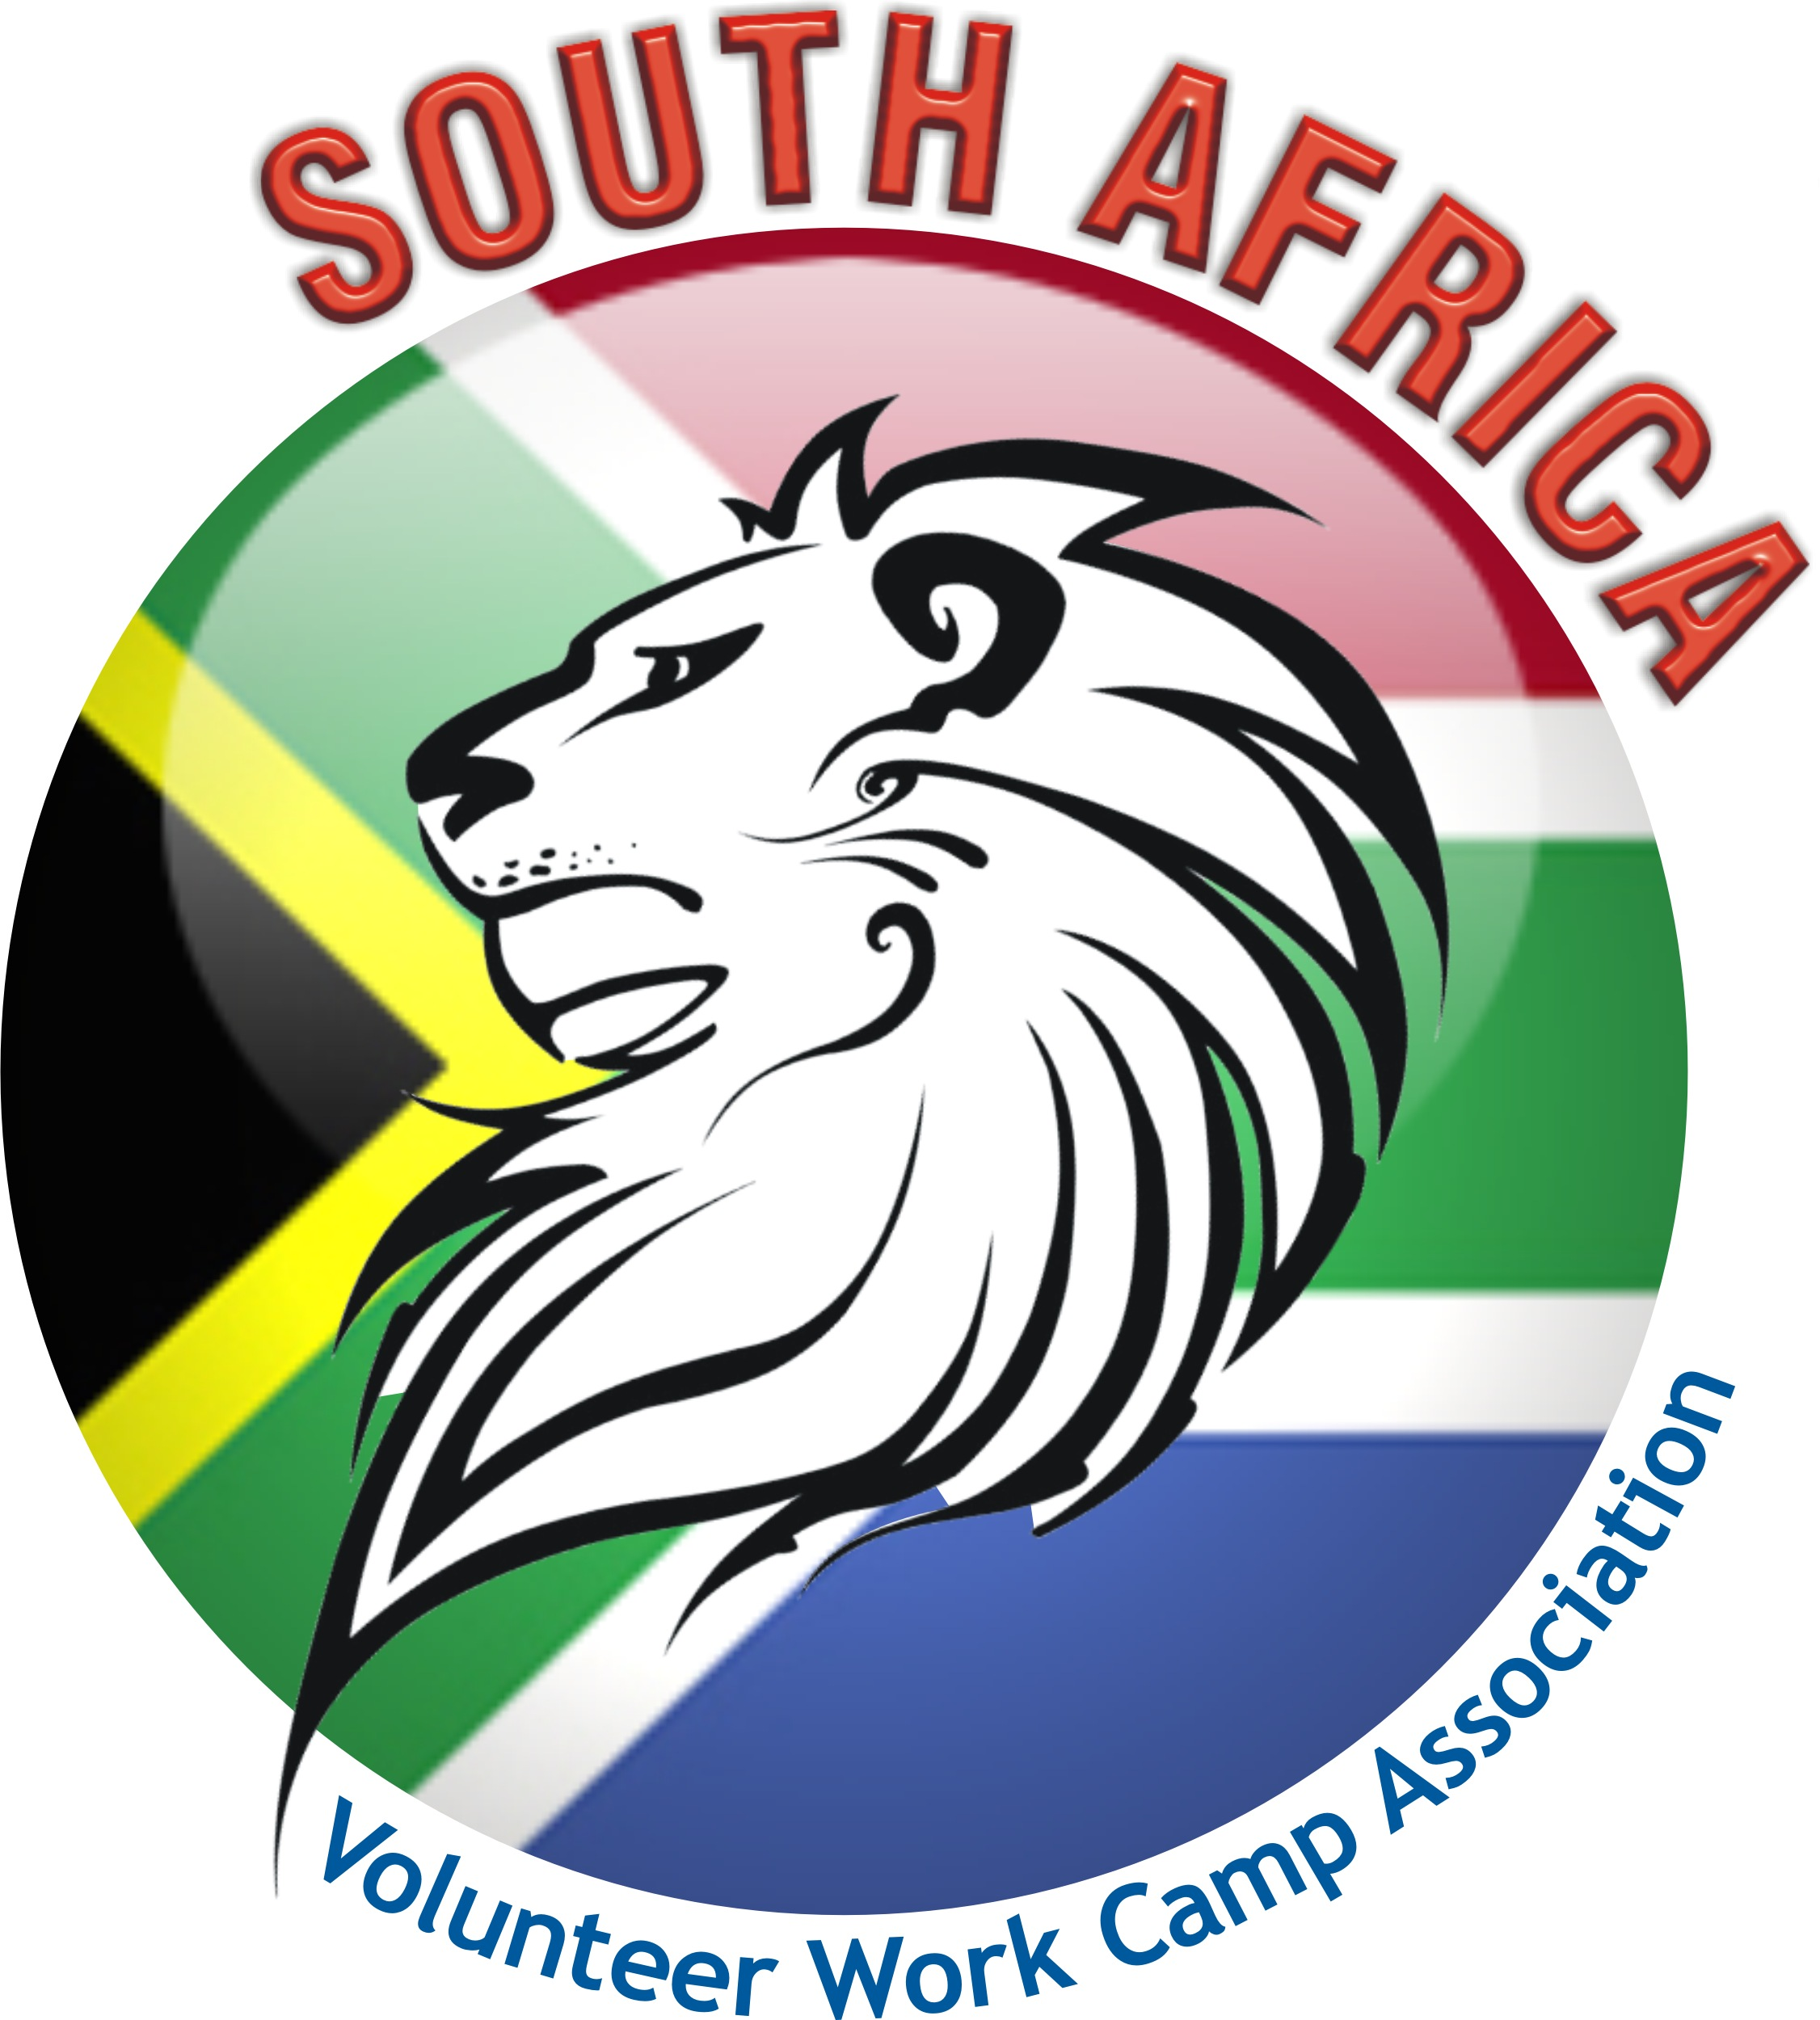 South Africa Volunteer Work Camp |Savwa